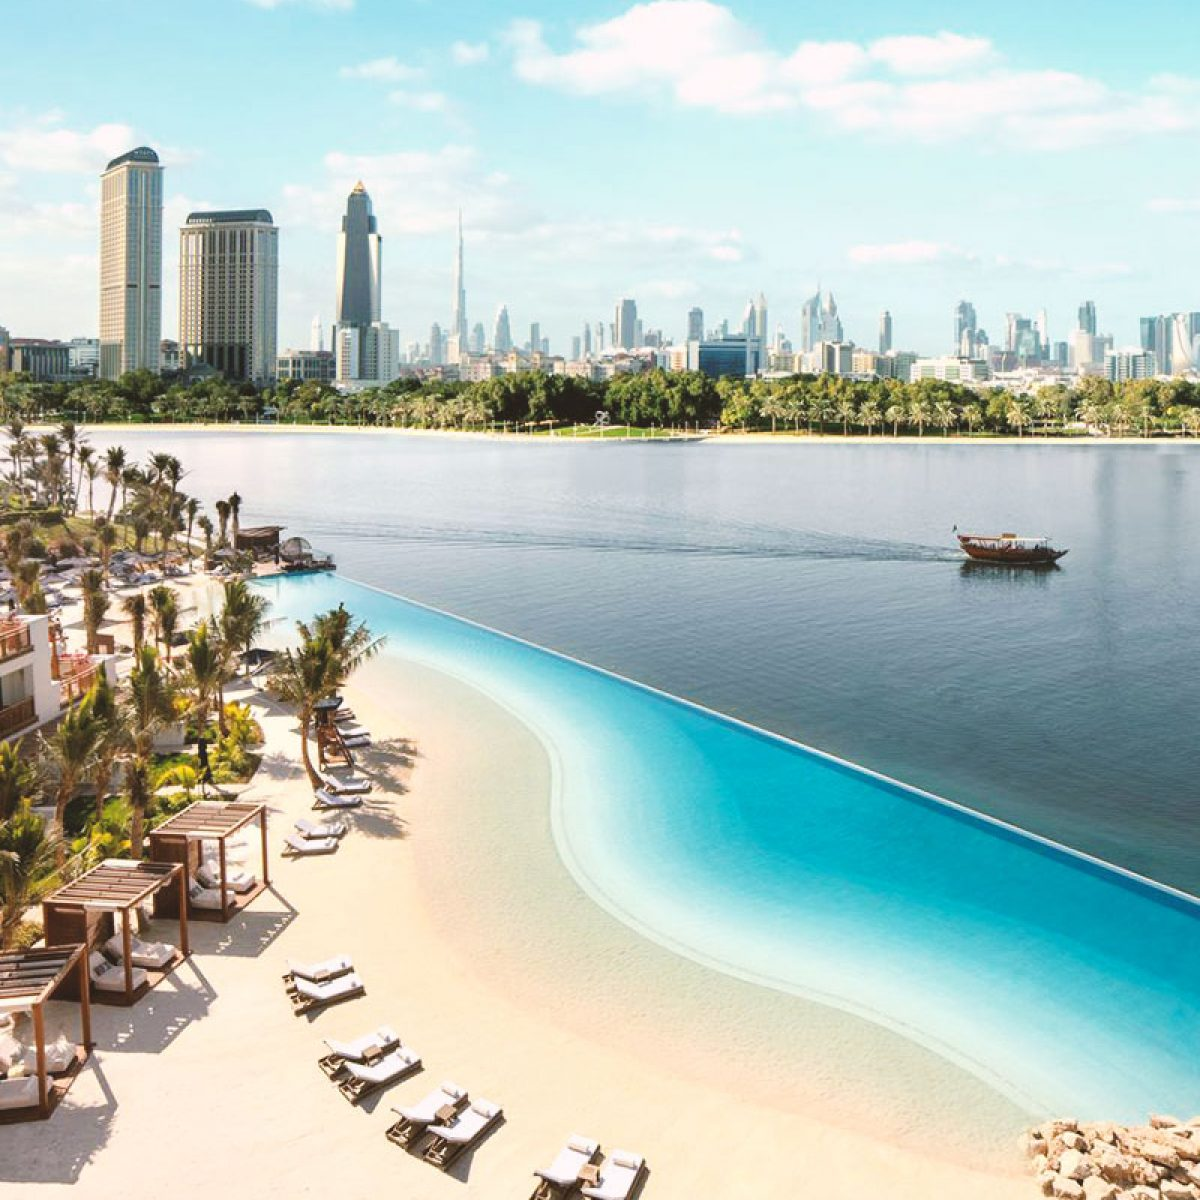 PARK-HYATT-CREEK-DUBAI-2